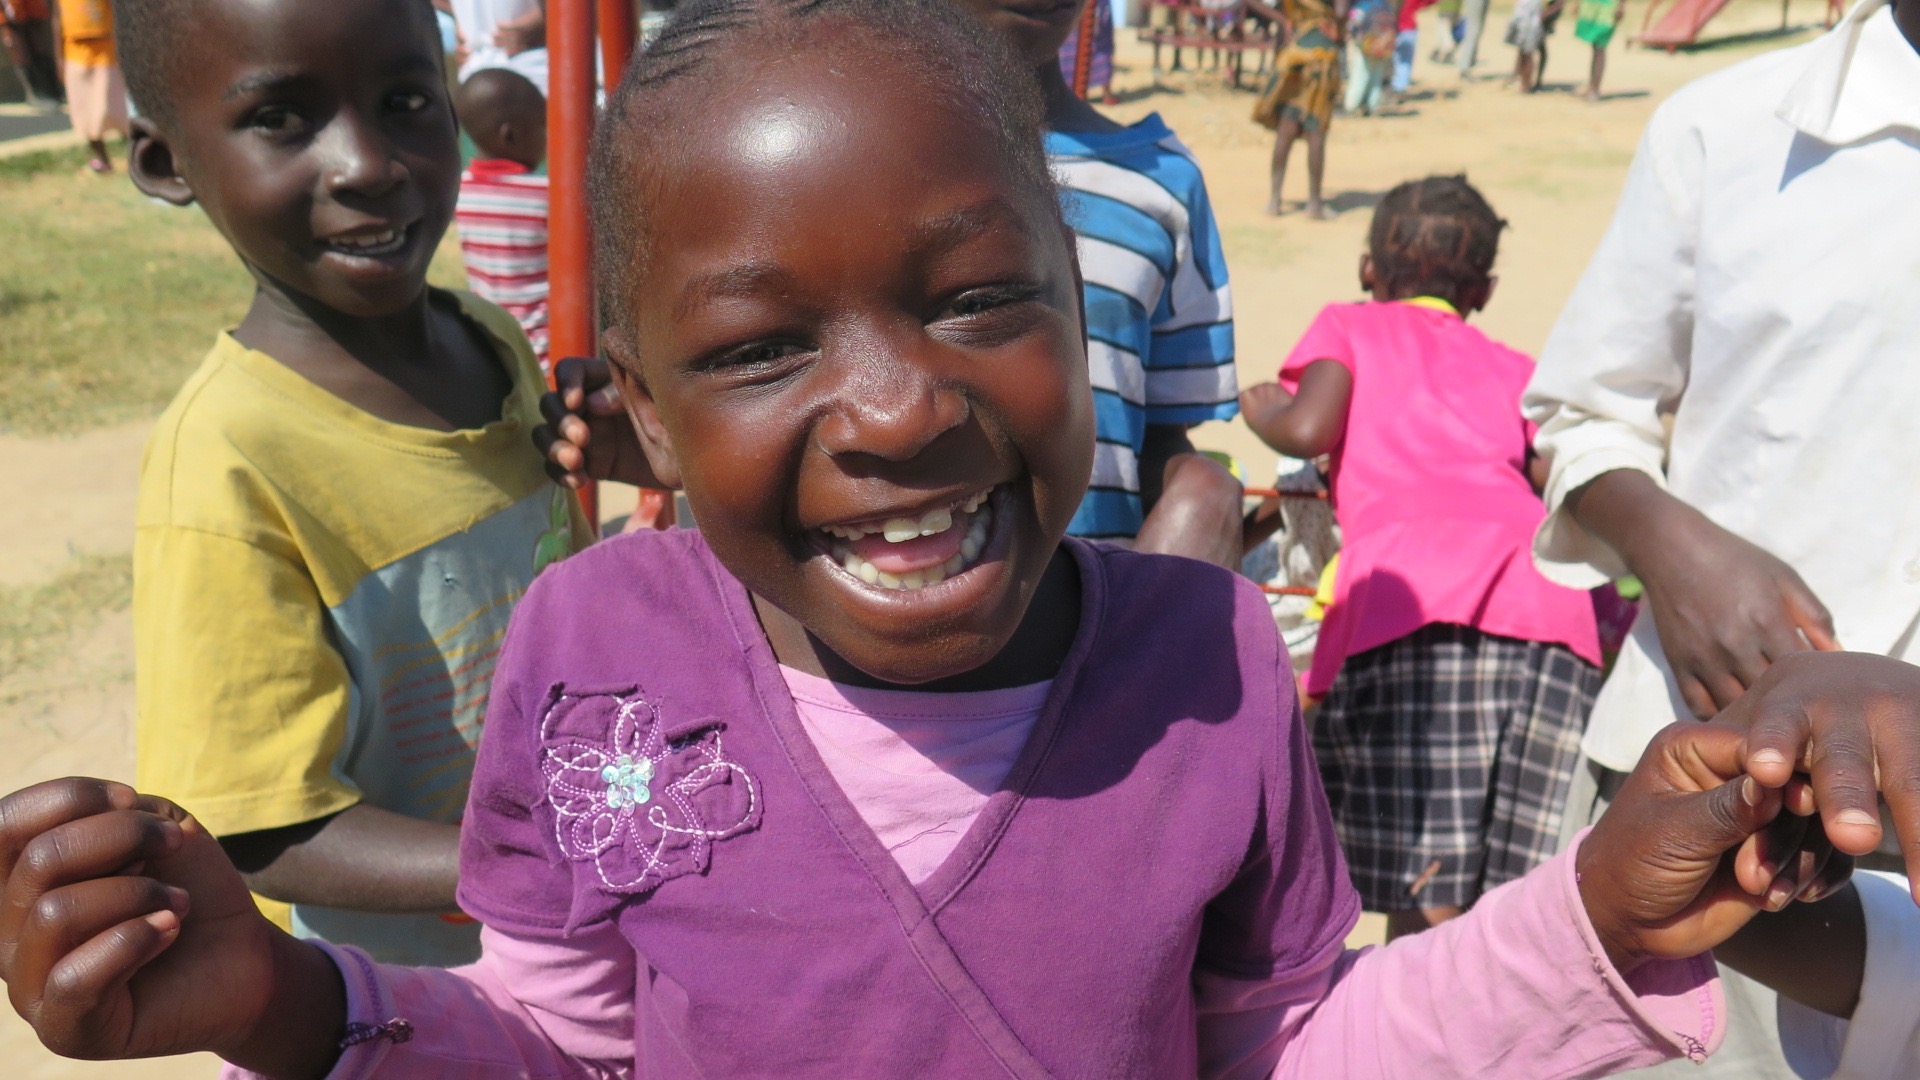 A young child in a purple sweater smiles in Zambia as others play behind her